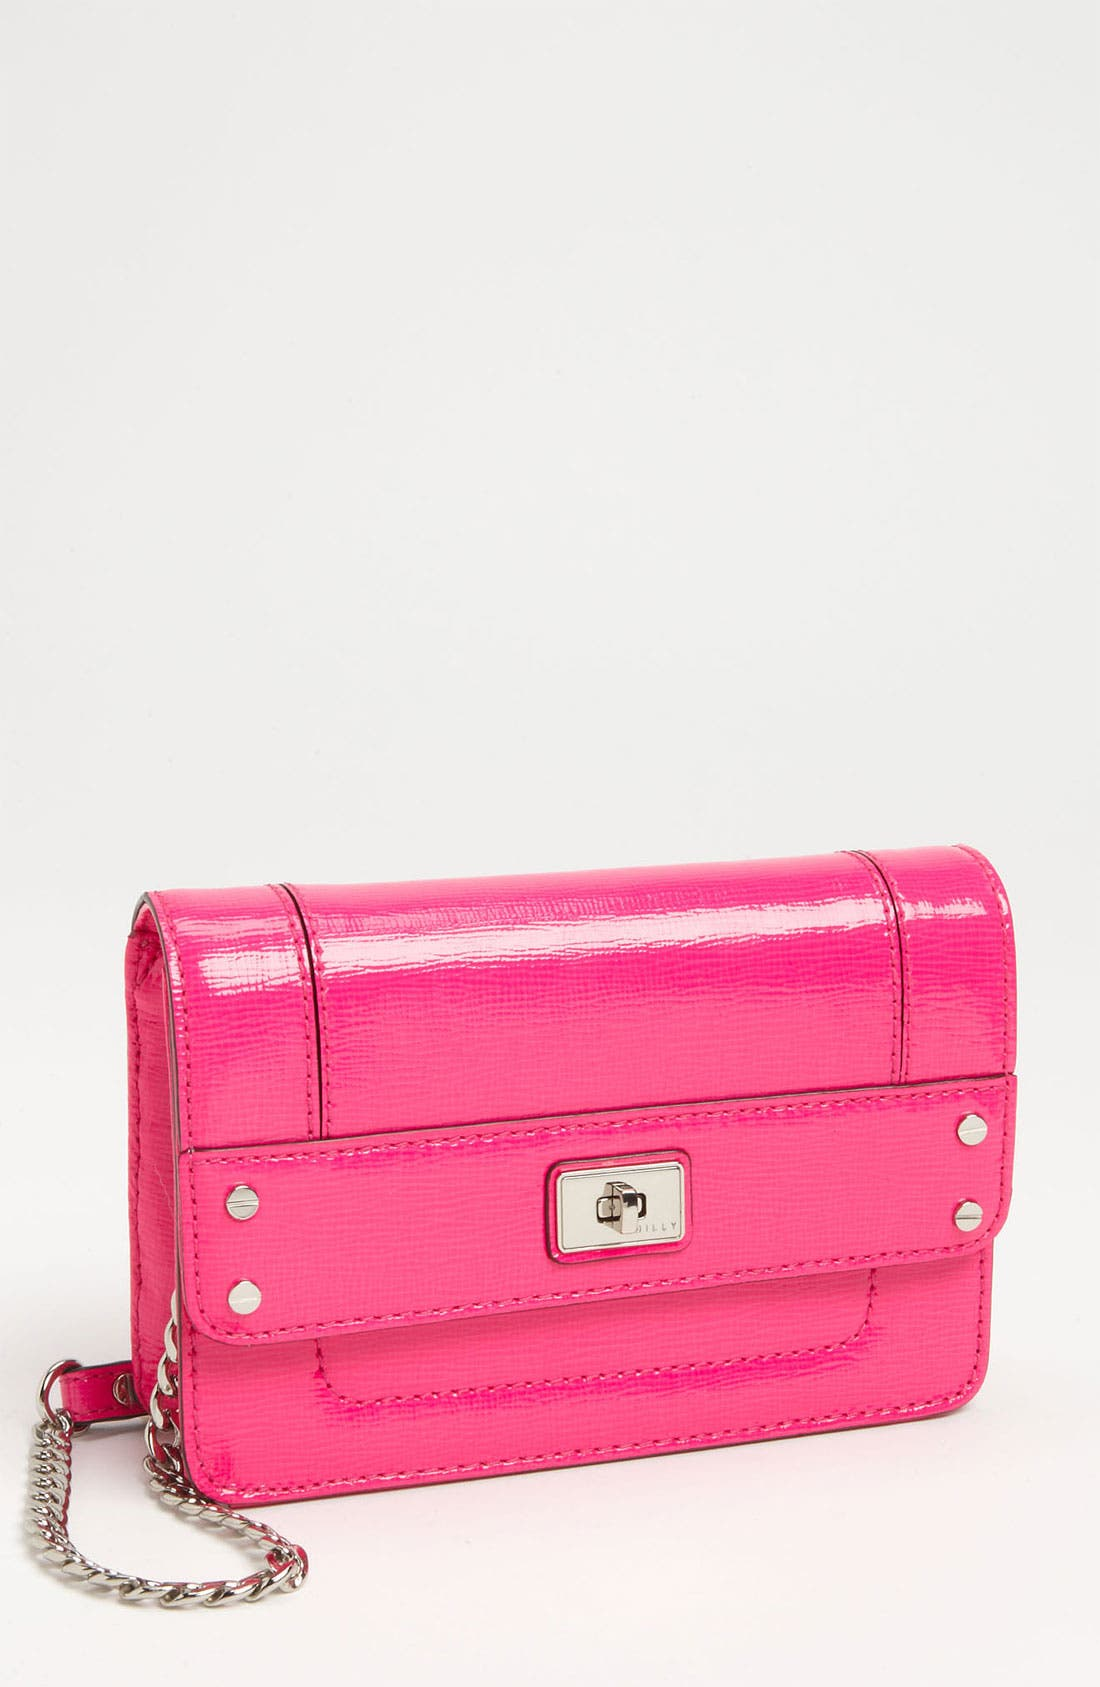 Main Image - Milly 'Colette' Crossbody Bag